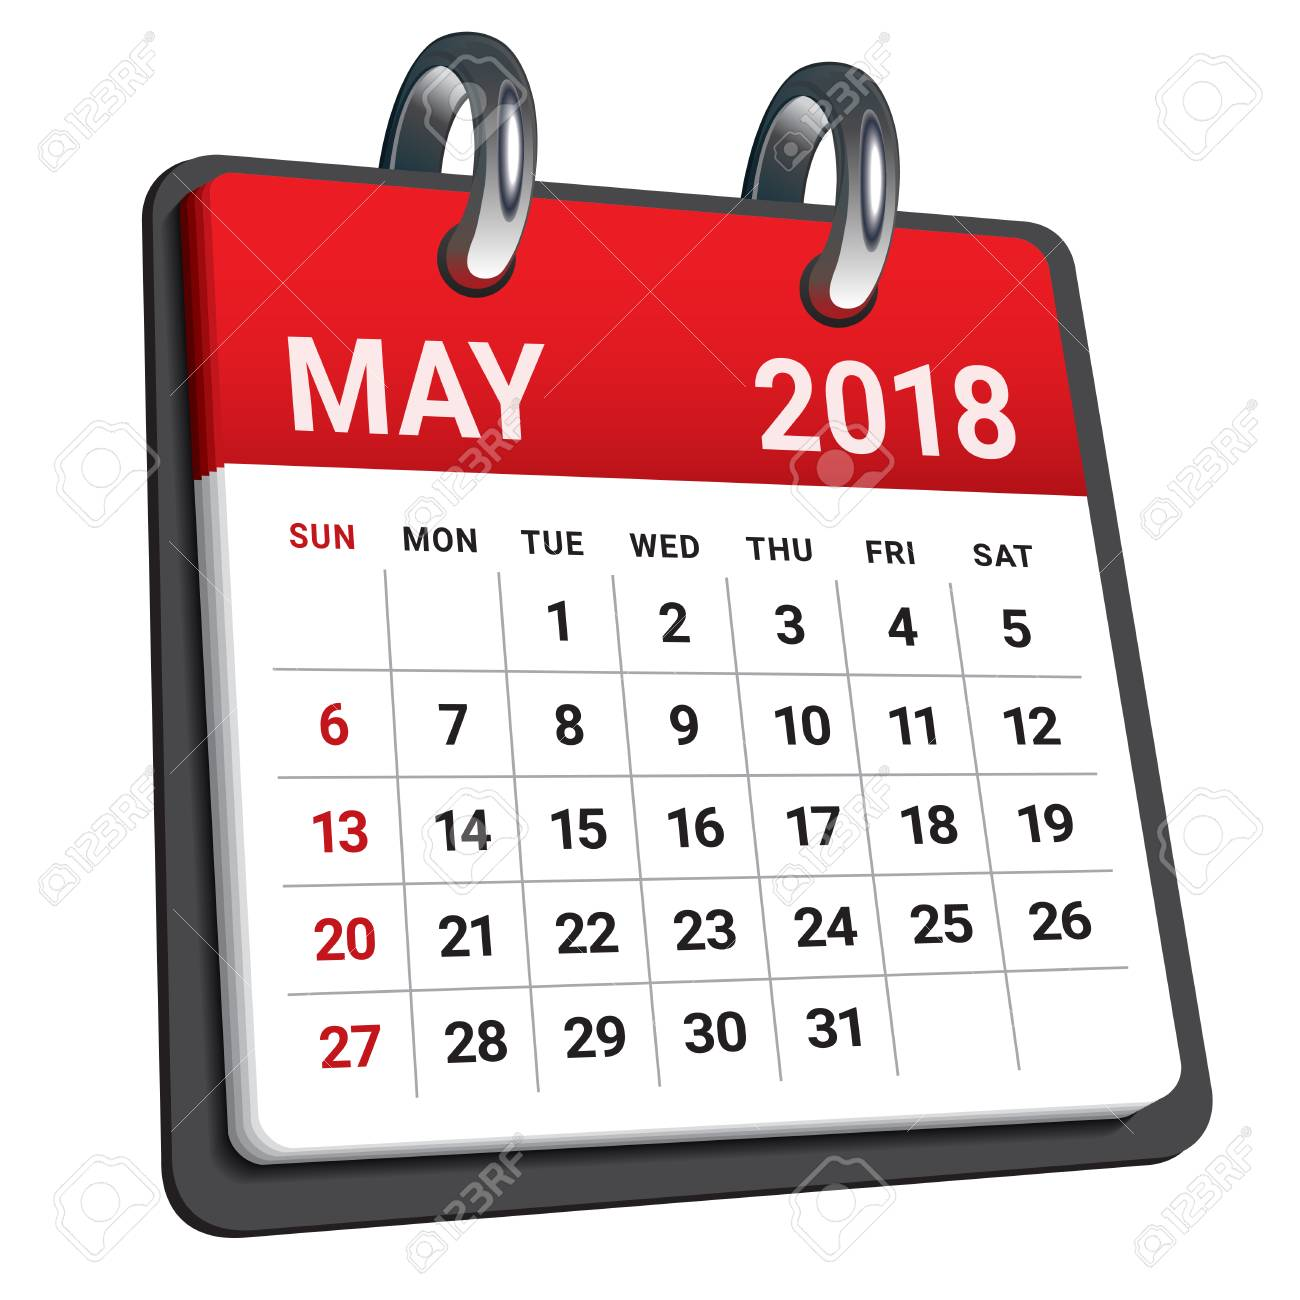 May 2018 calendar vector illustration, simple and clean design..